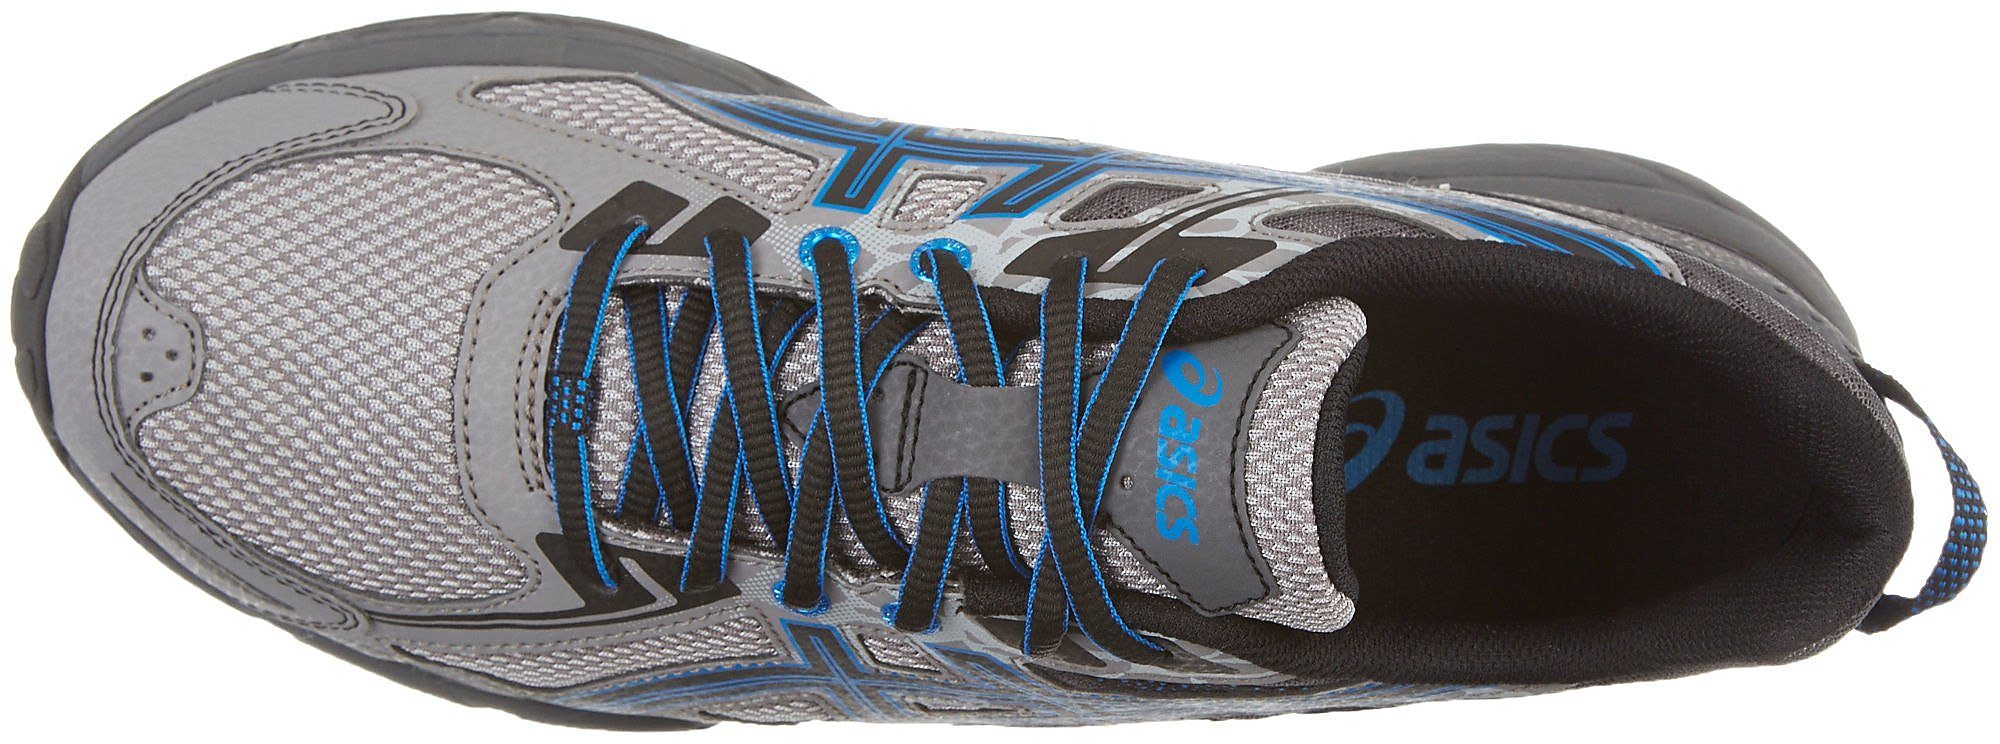 Asics-Mens-Gel-Venture-6-Athletic-Shoes thumbnail 14